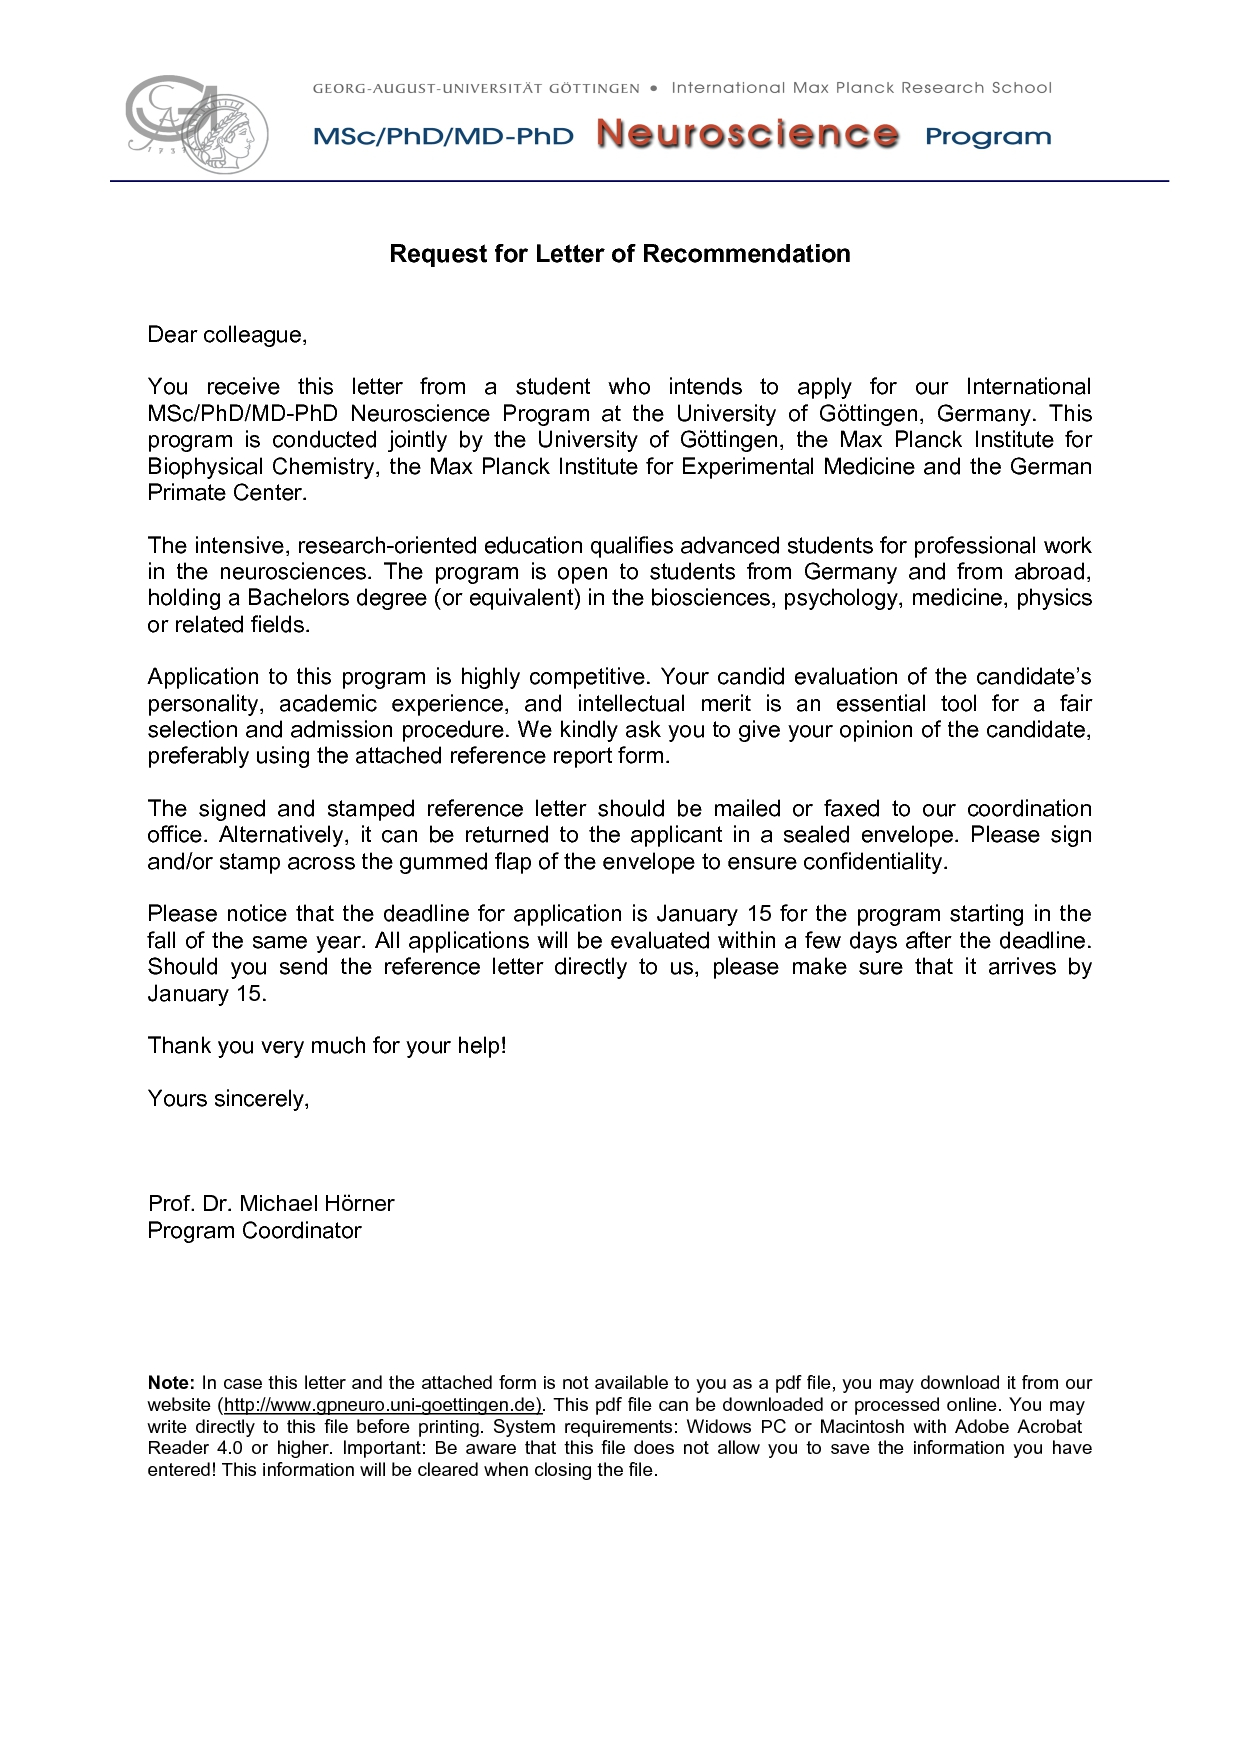 reference letter template for coworker Collection-Re mendation letter for work colleague image hd sample re mendation letter for work colleague image hd sample 1-q